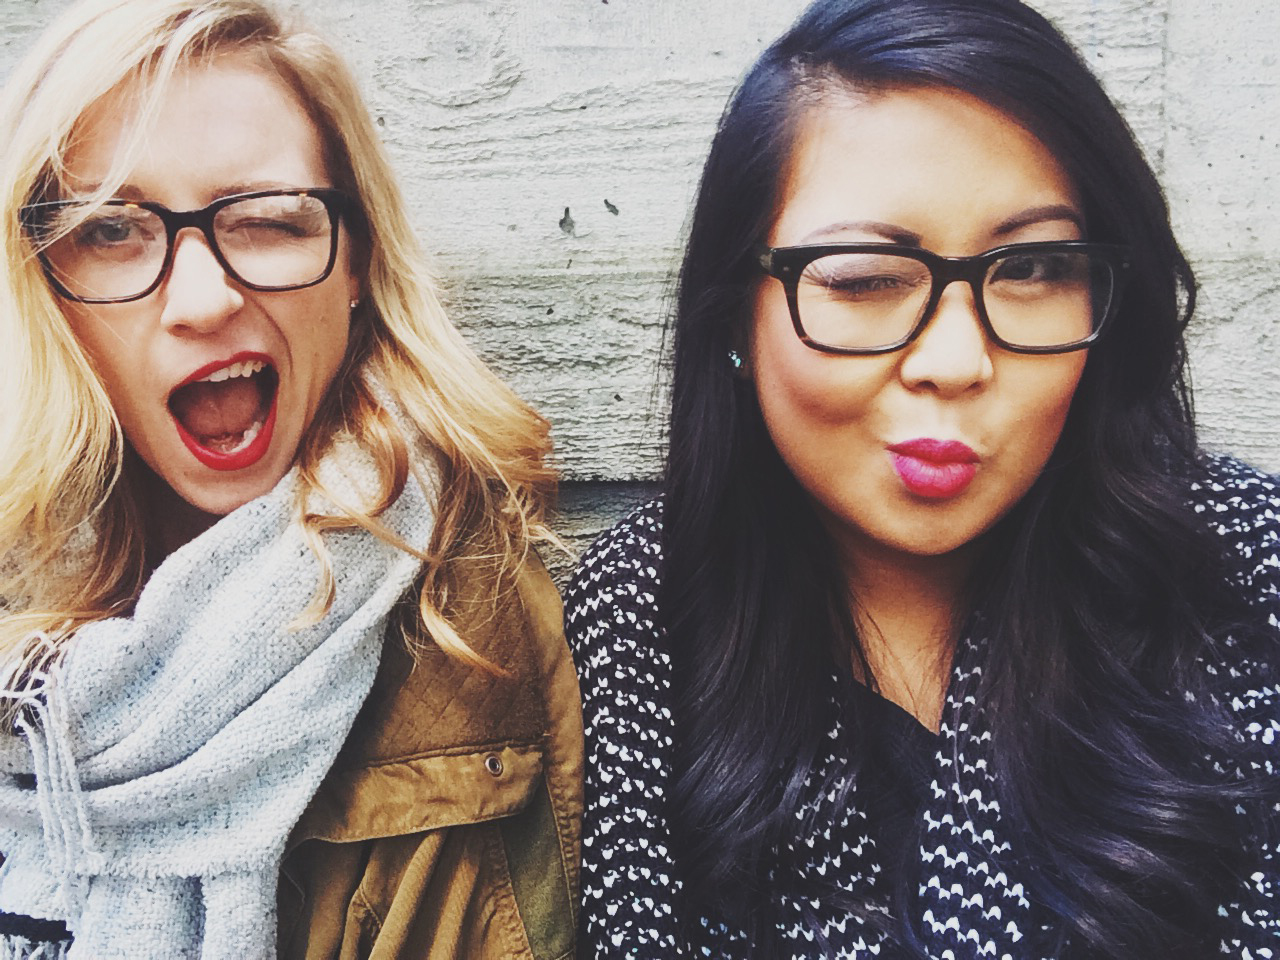 We heart Warby Parker